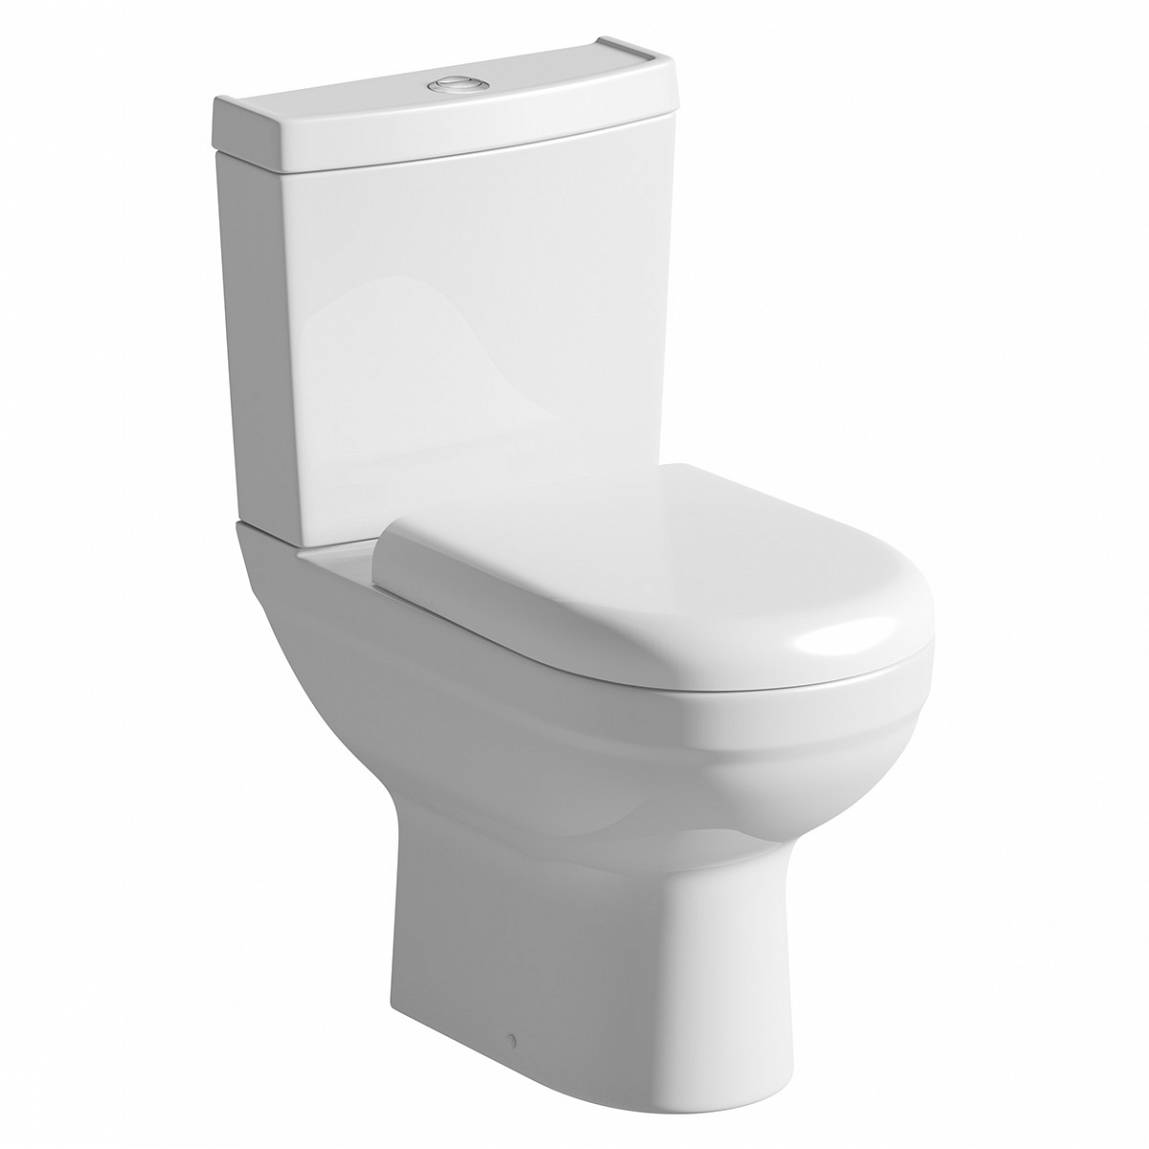 Image of Como Close Coupled Toilet inc Soft Close Seat Special Offer